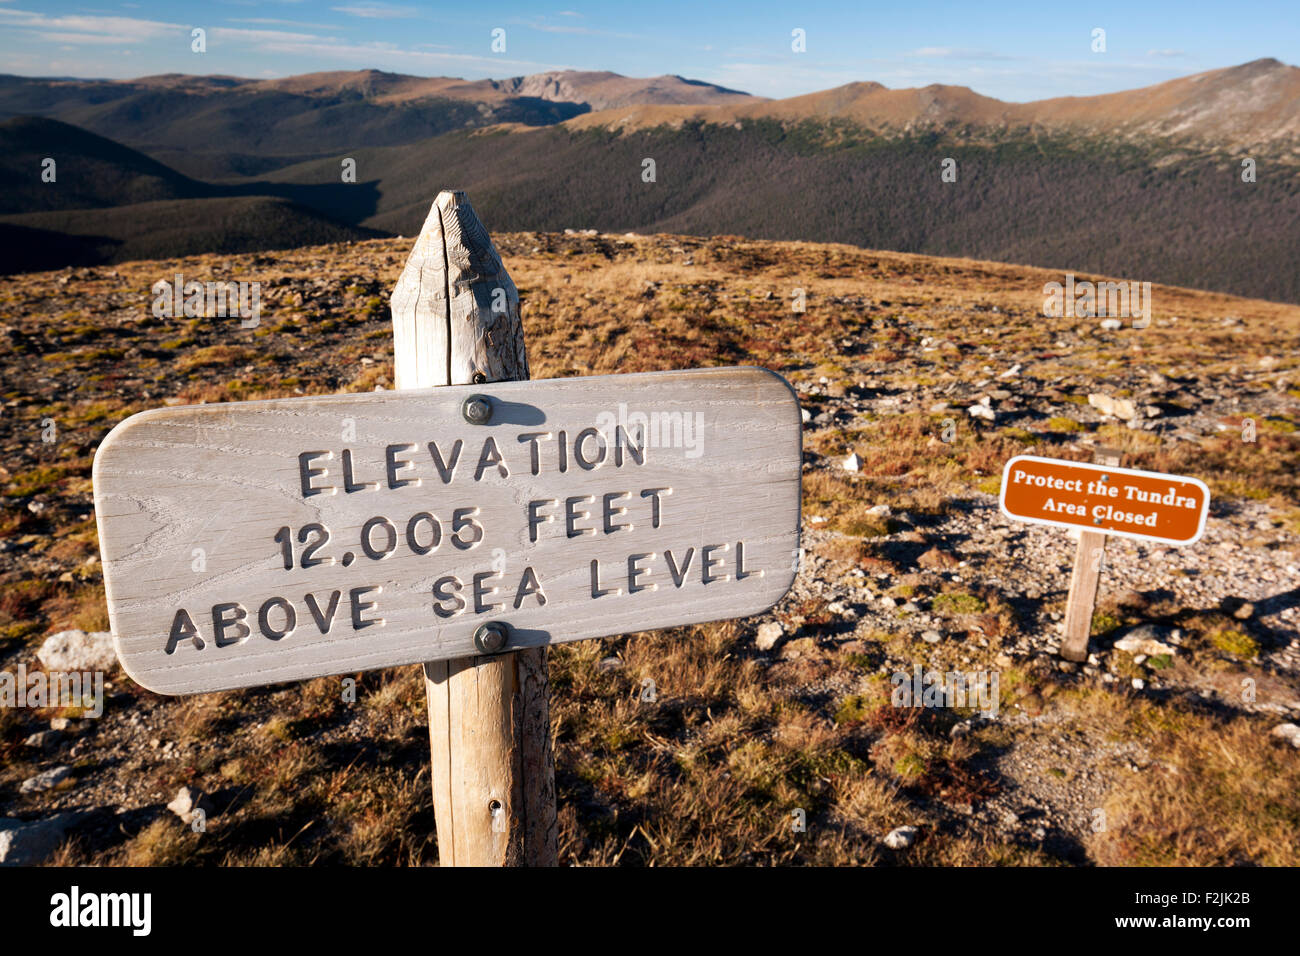 Feet Elevation Stock Photos Feet Elevation Stock Images - Elevation in feet above sea level